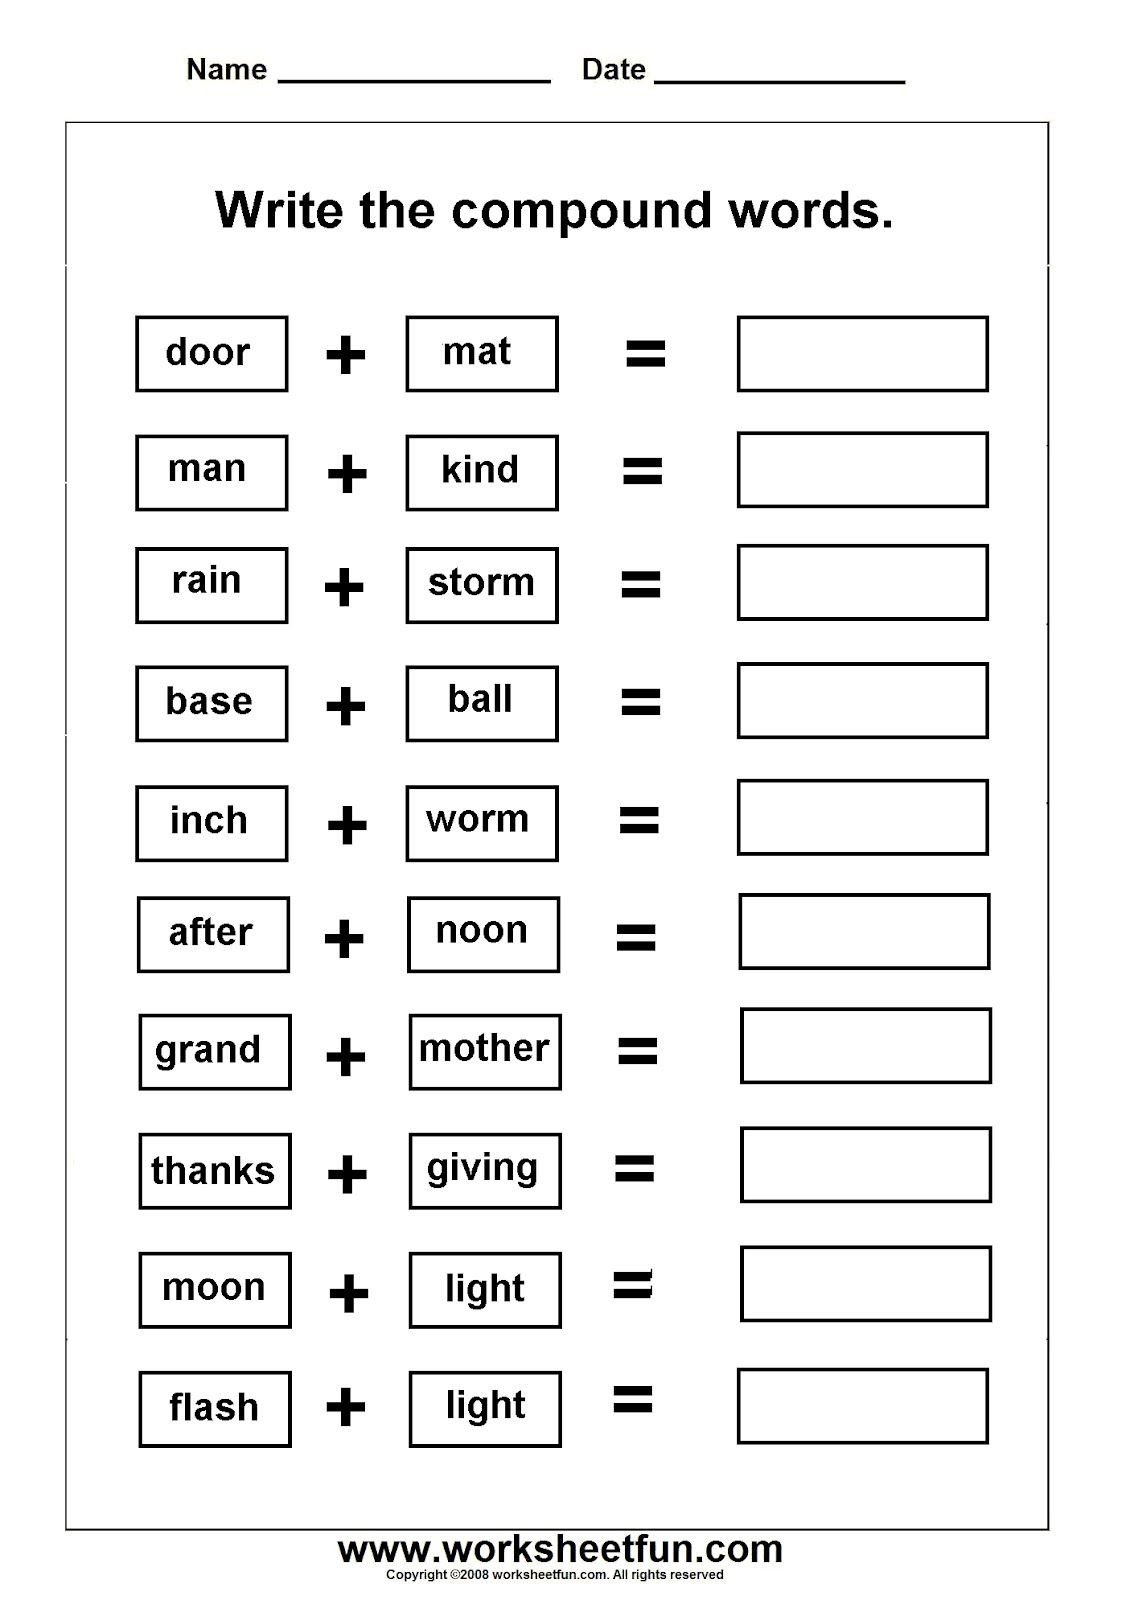 Compound Words Worksheets Kindergarten Pound Words Worksheets Grade 3